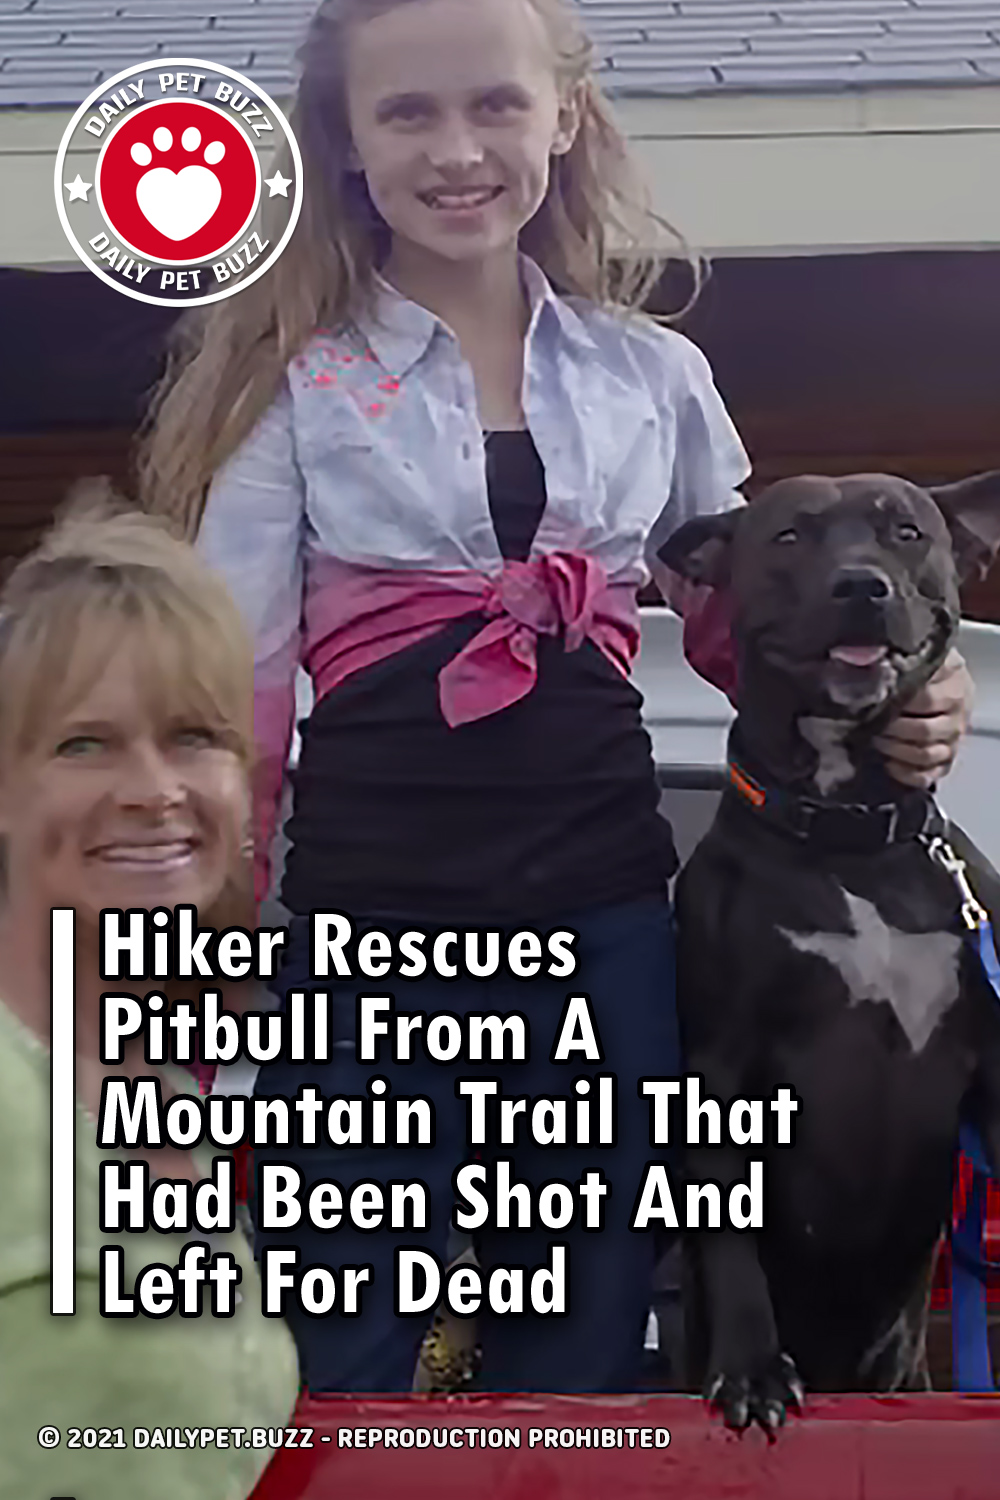 Hiker Rescues Pitbull From A Mountain Trail That Had Been Shot And Left For Dead